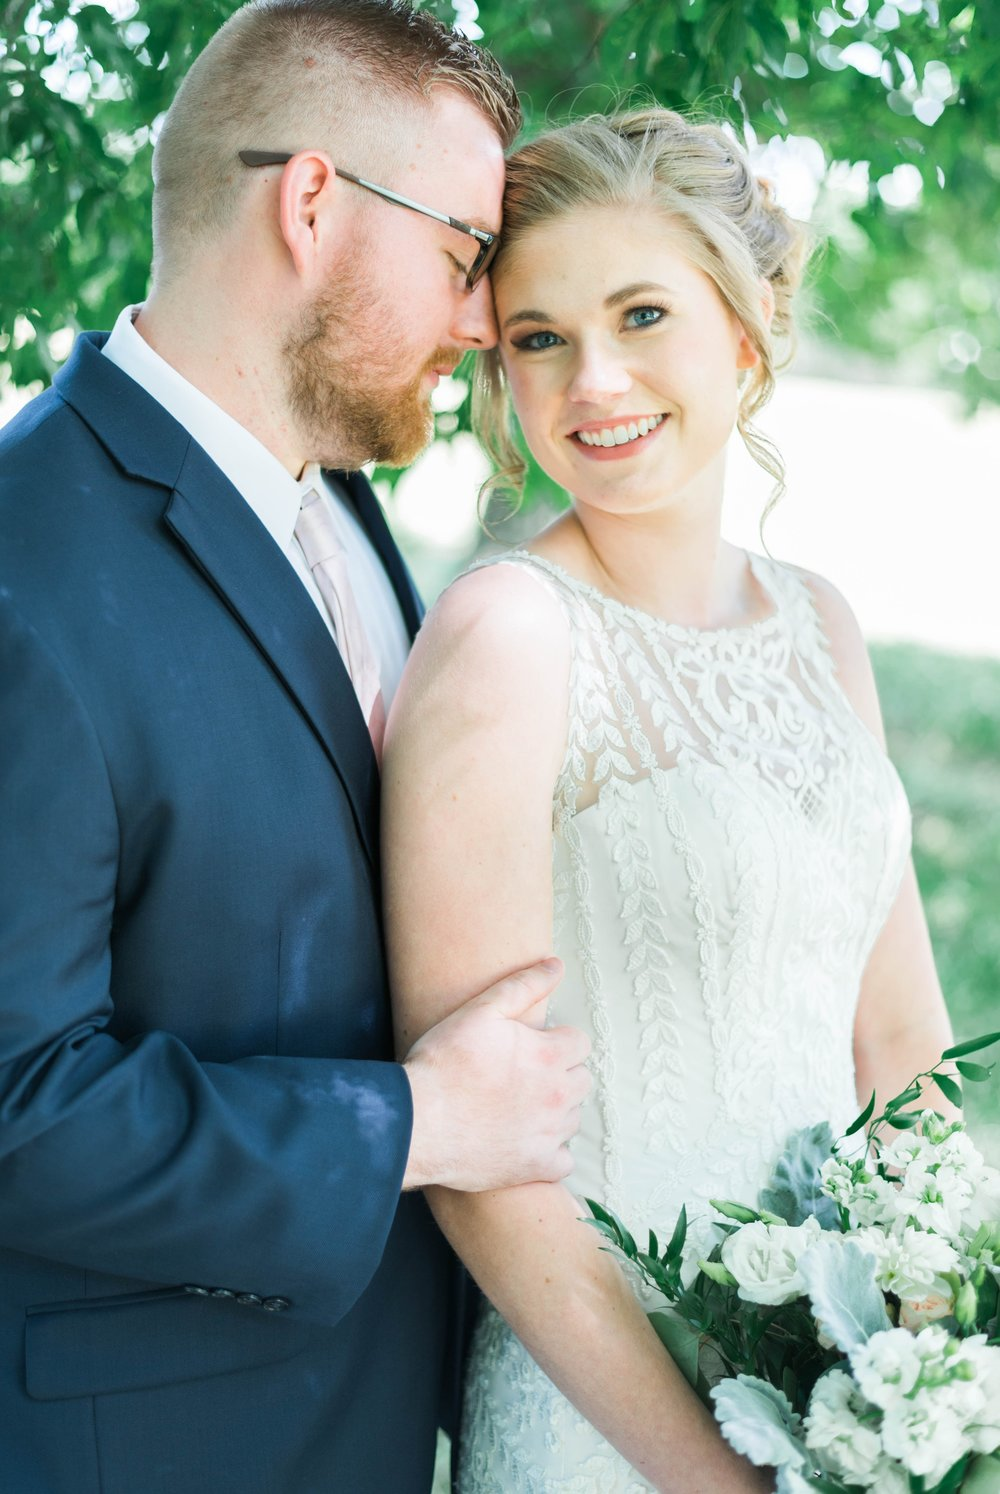 SorellaFarms_VirginiaWeddingPhotographer_BarnWedding_Lynchburgweddingphotographer_DanielleTyler 1.jpg